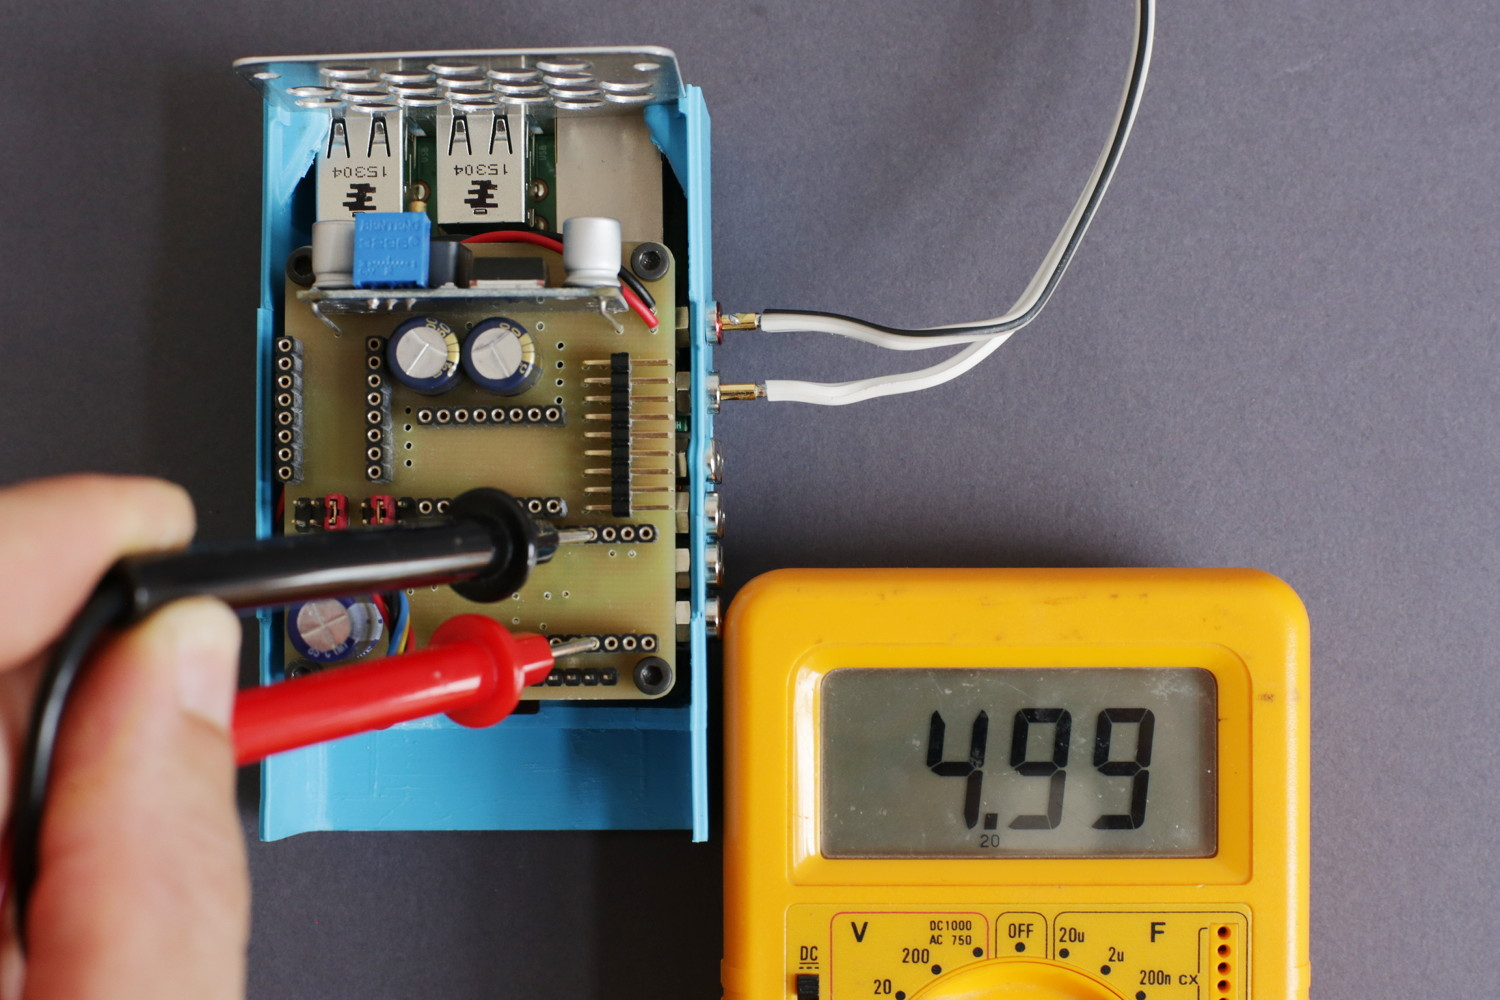 Measure the voltage on the Arduino socket like in the picture...